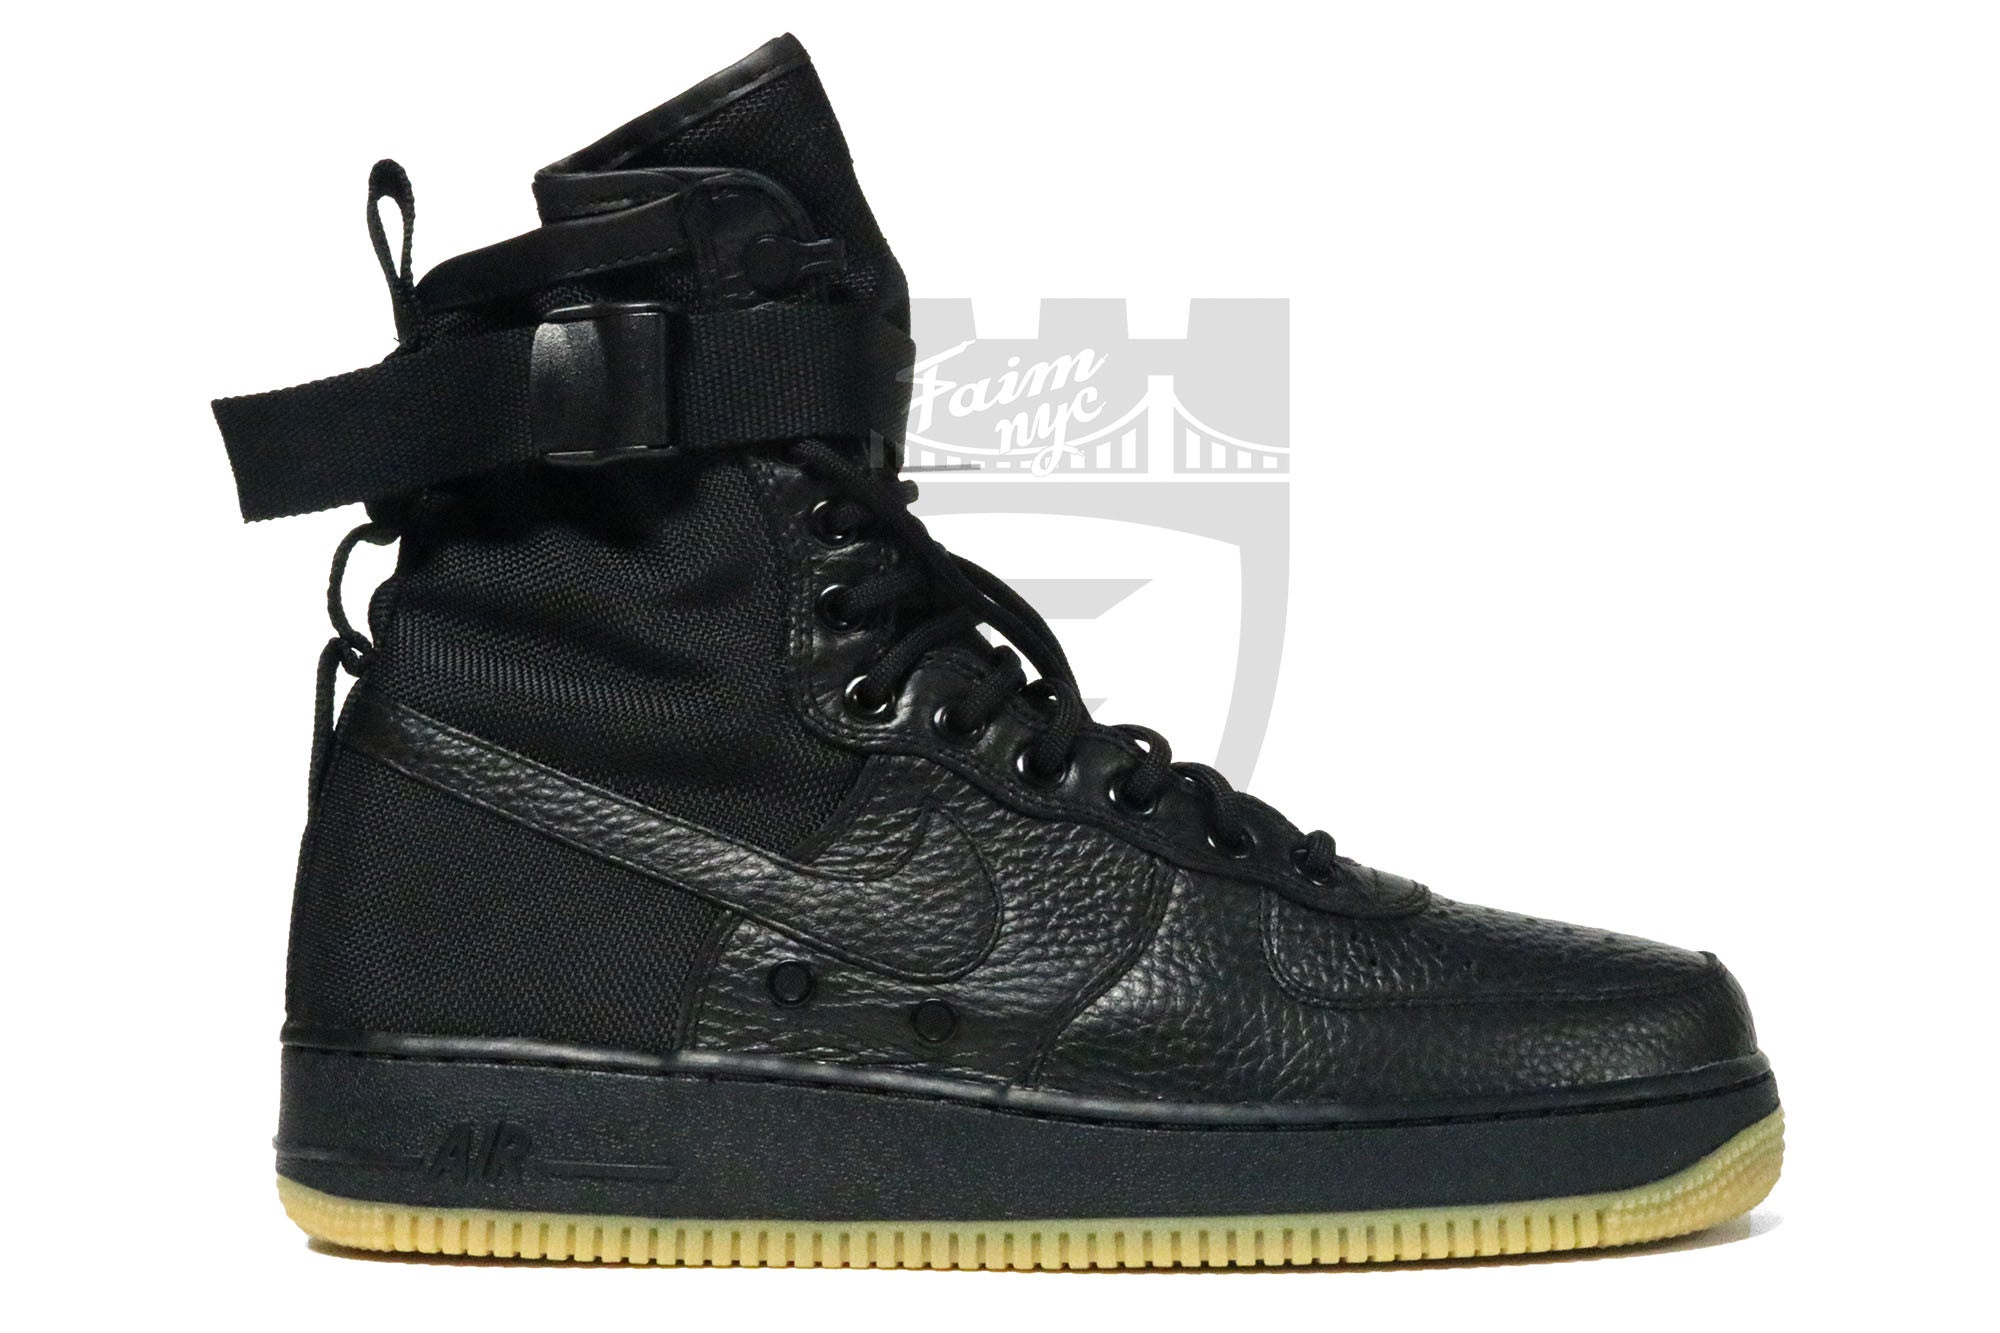 air force 1 gum sole